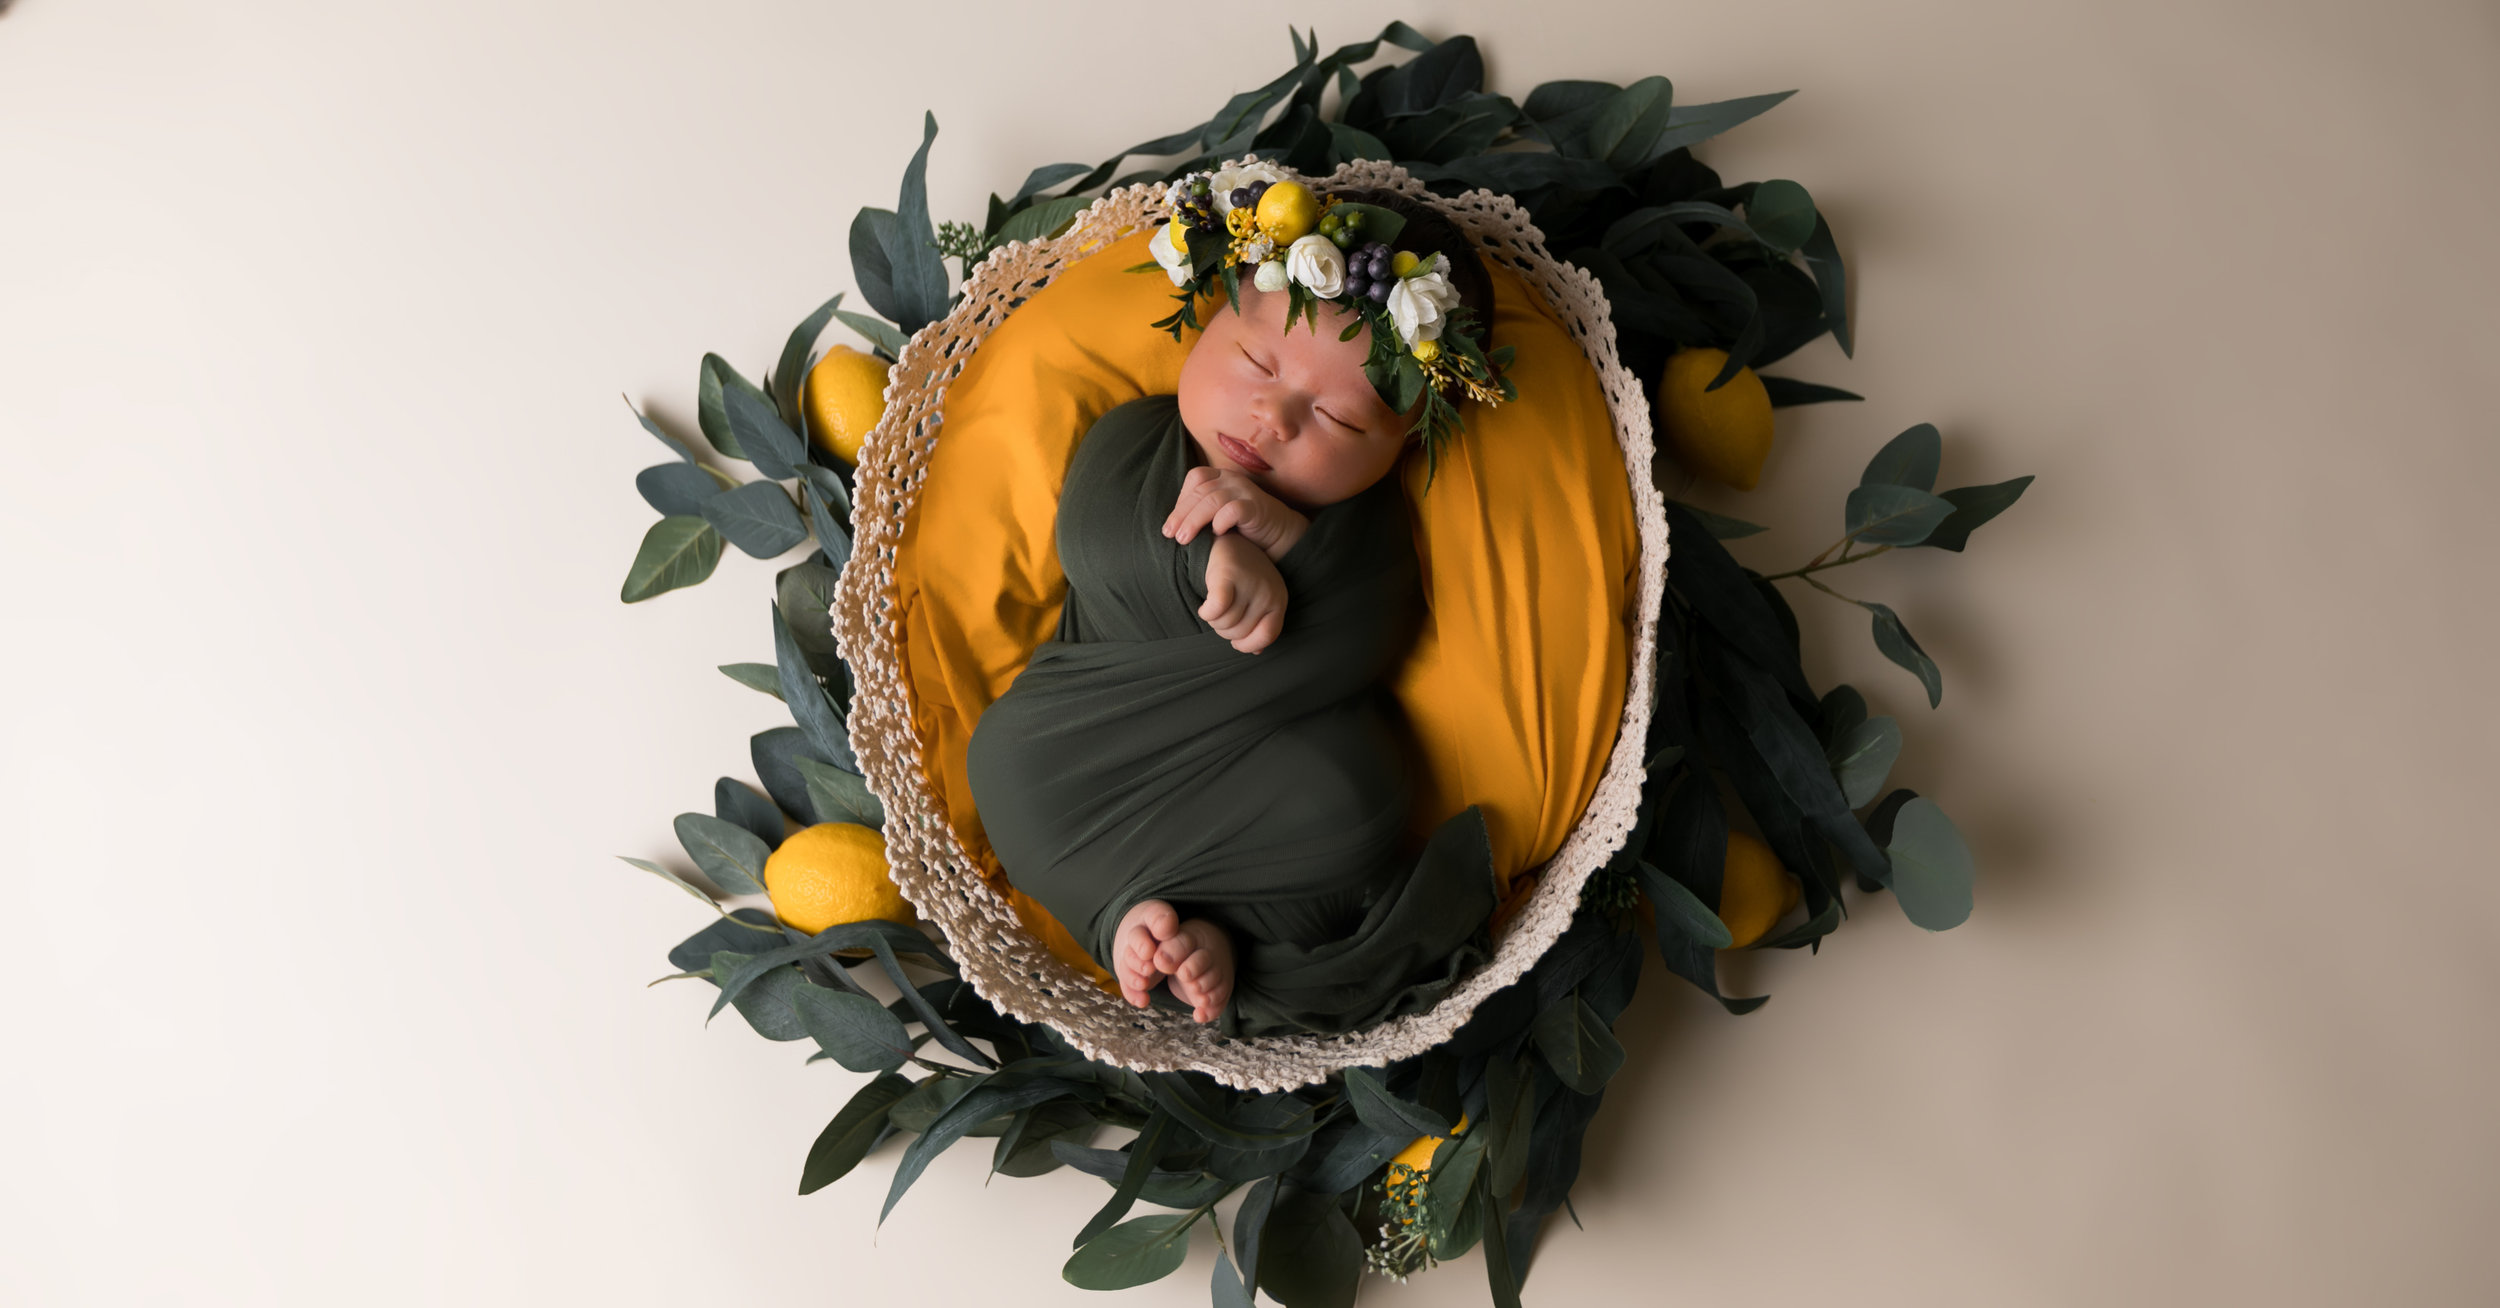 newborn photo shoot newborn studio photography kailua oahu hawaii storm elaine photography-1.jpg